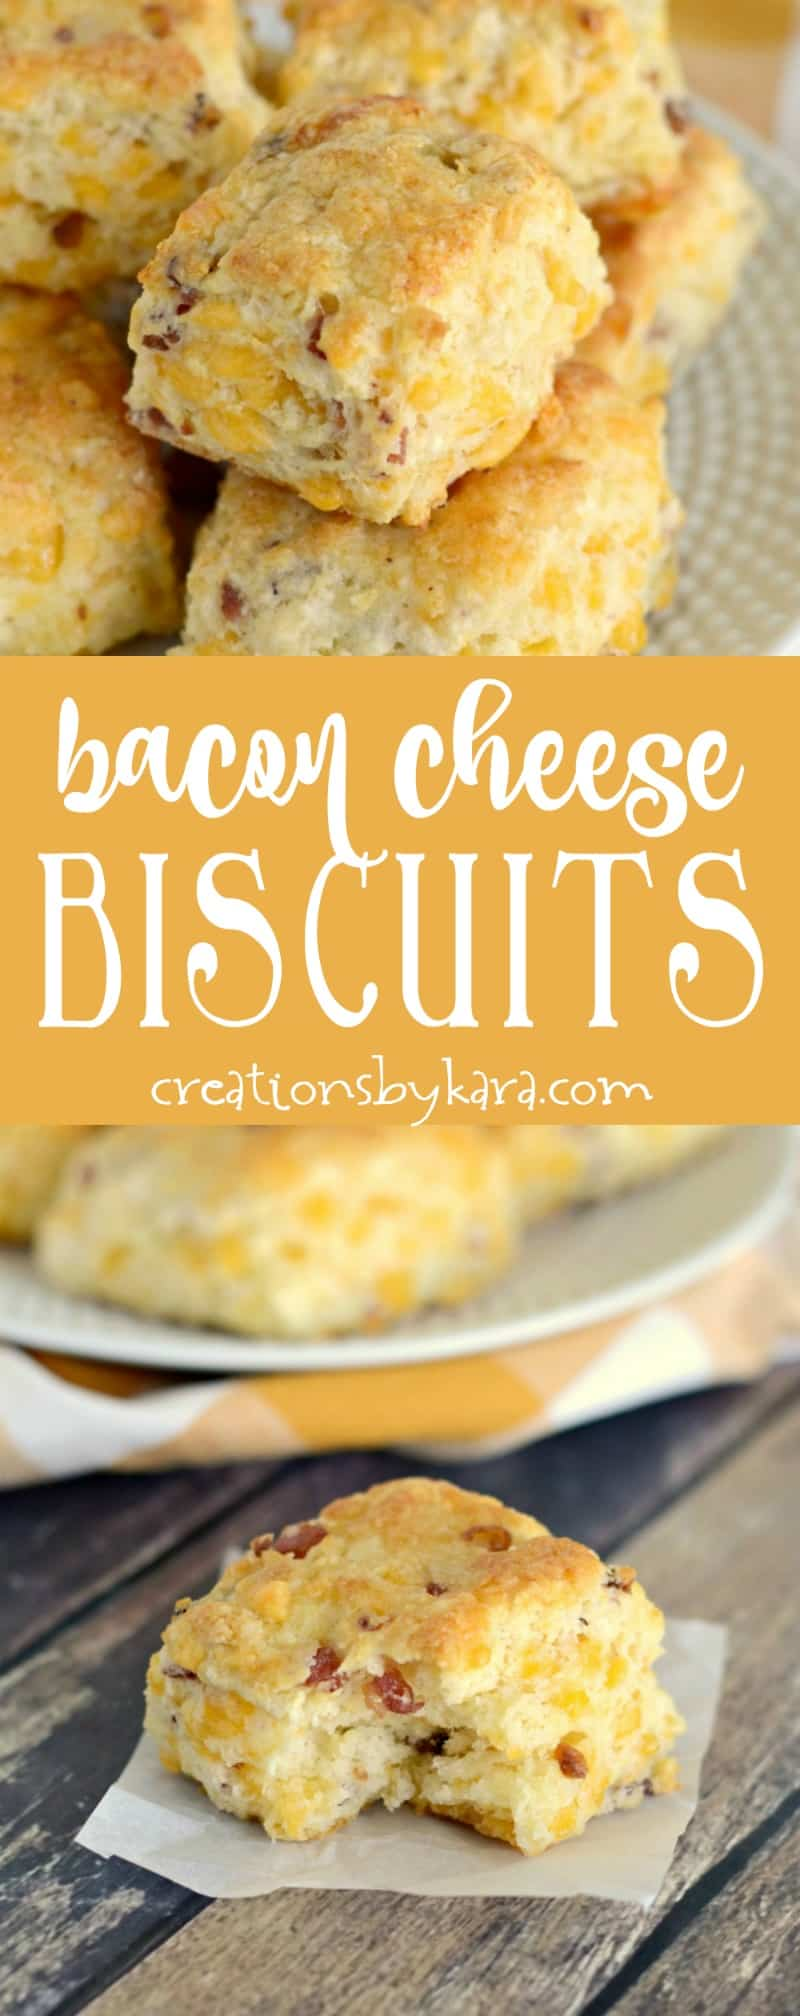 Bacon cheese biscuits are a great side to any meal, but they are especially yummy served with soup! A wonderful biscuit recipe.